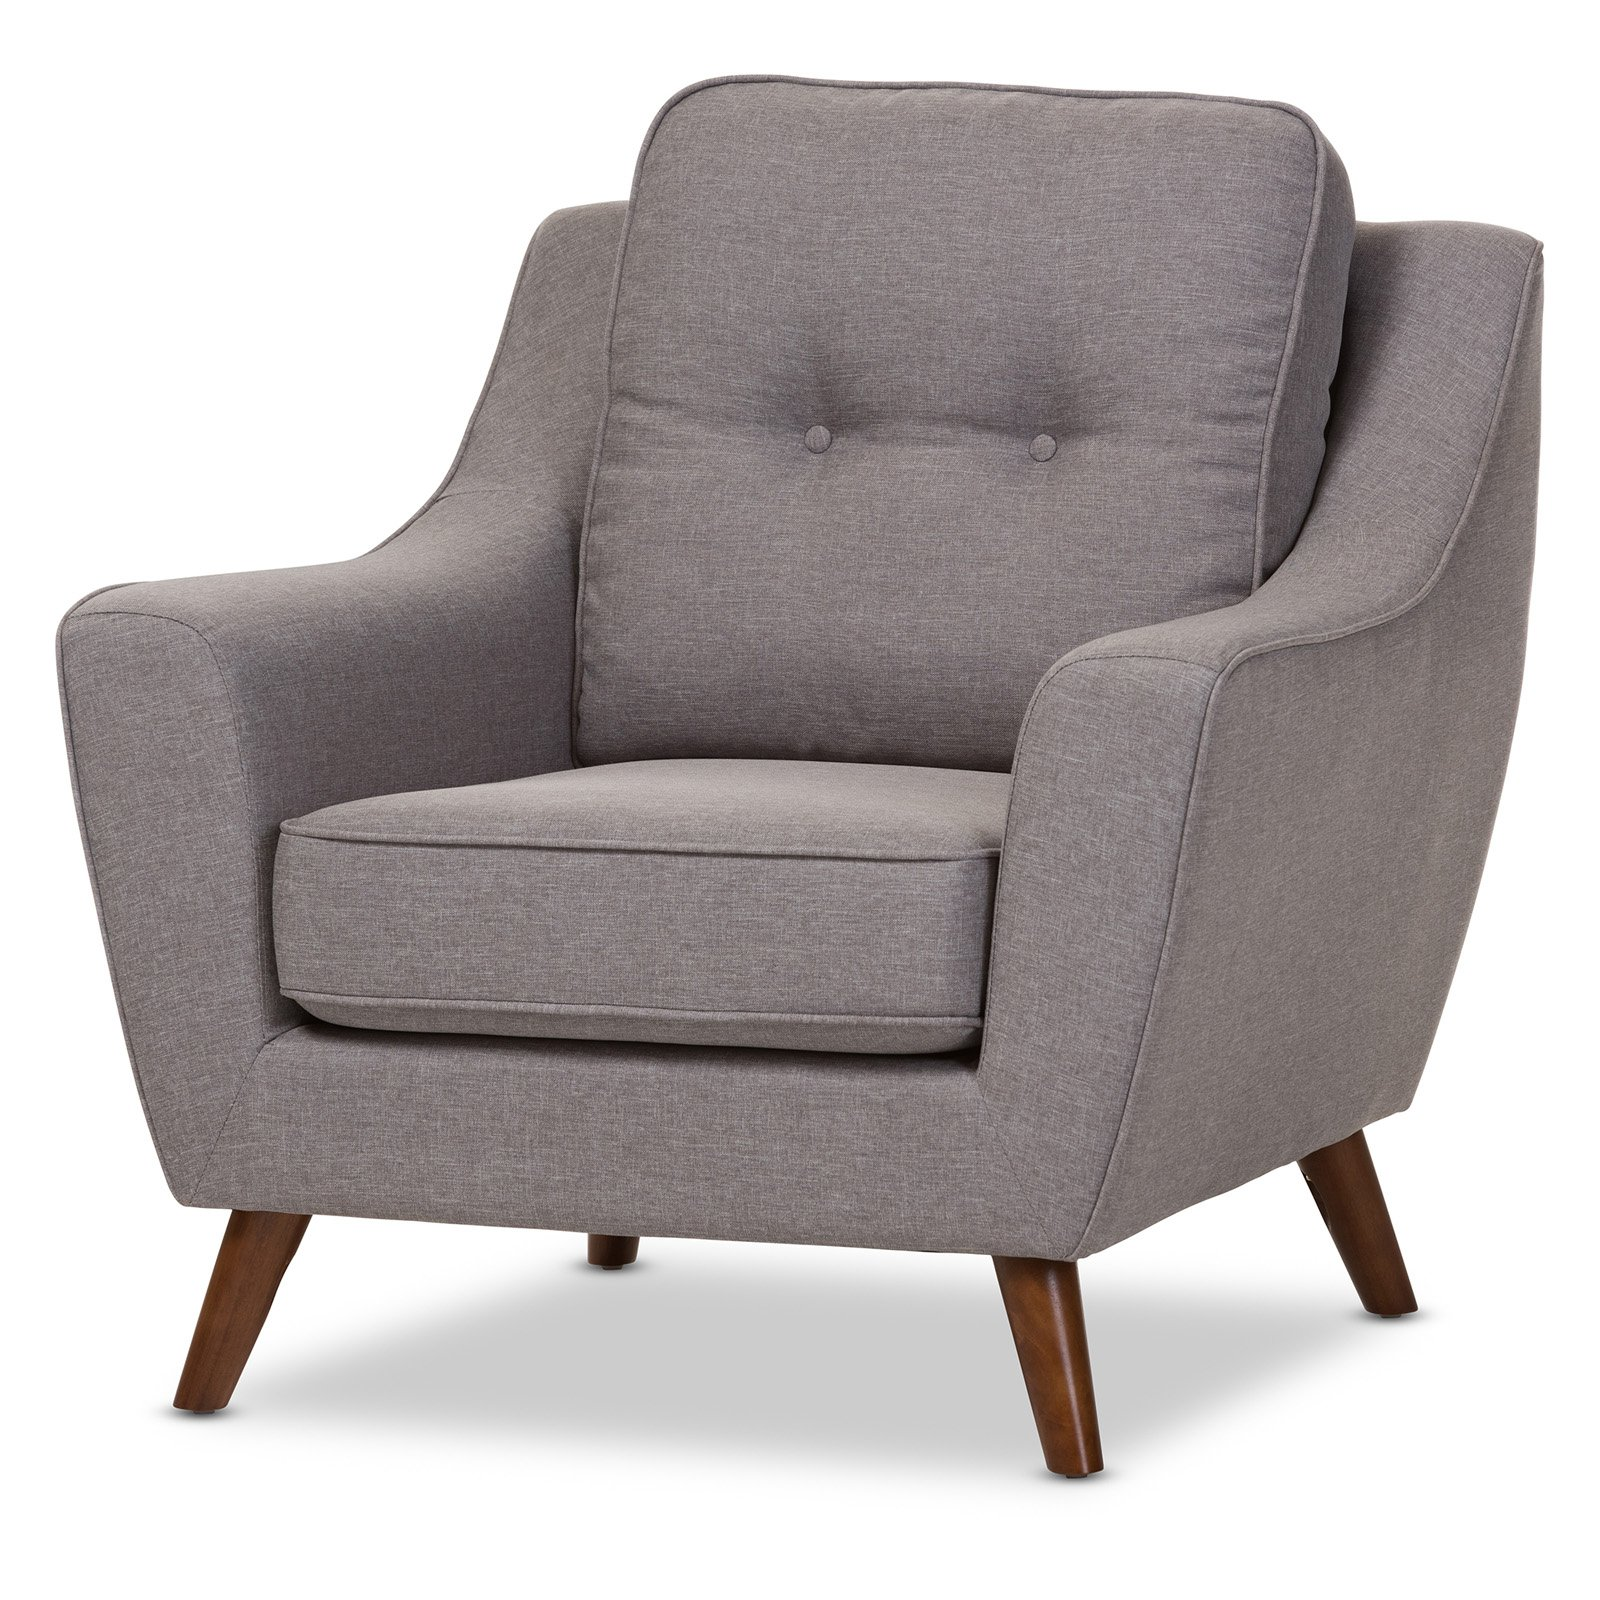 Baxton Studio Deena Mid-Century Modern Light Gray Fabric Upholstered Walnut Wood Button-Tufted Armchair by Wholesale Interiors